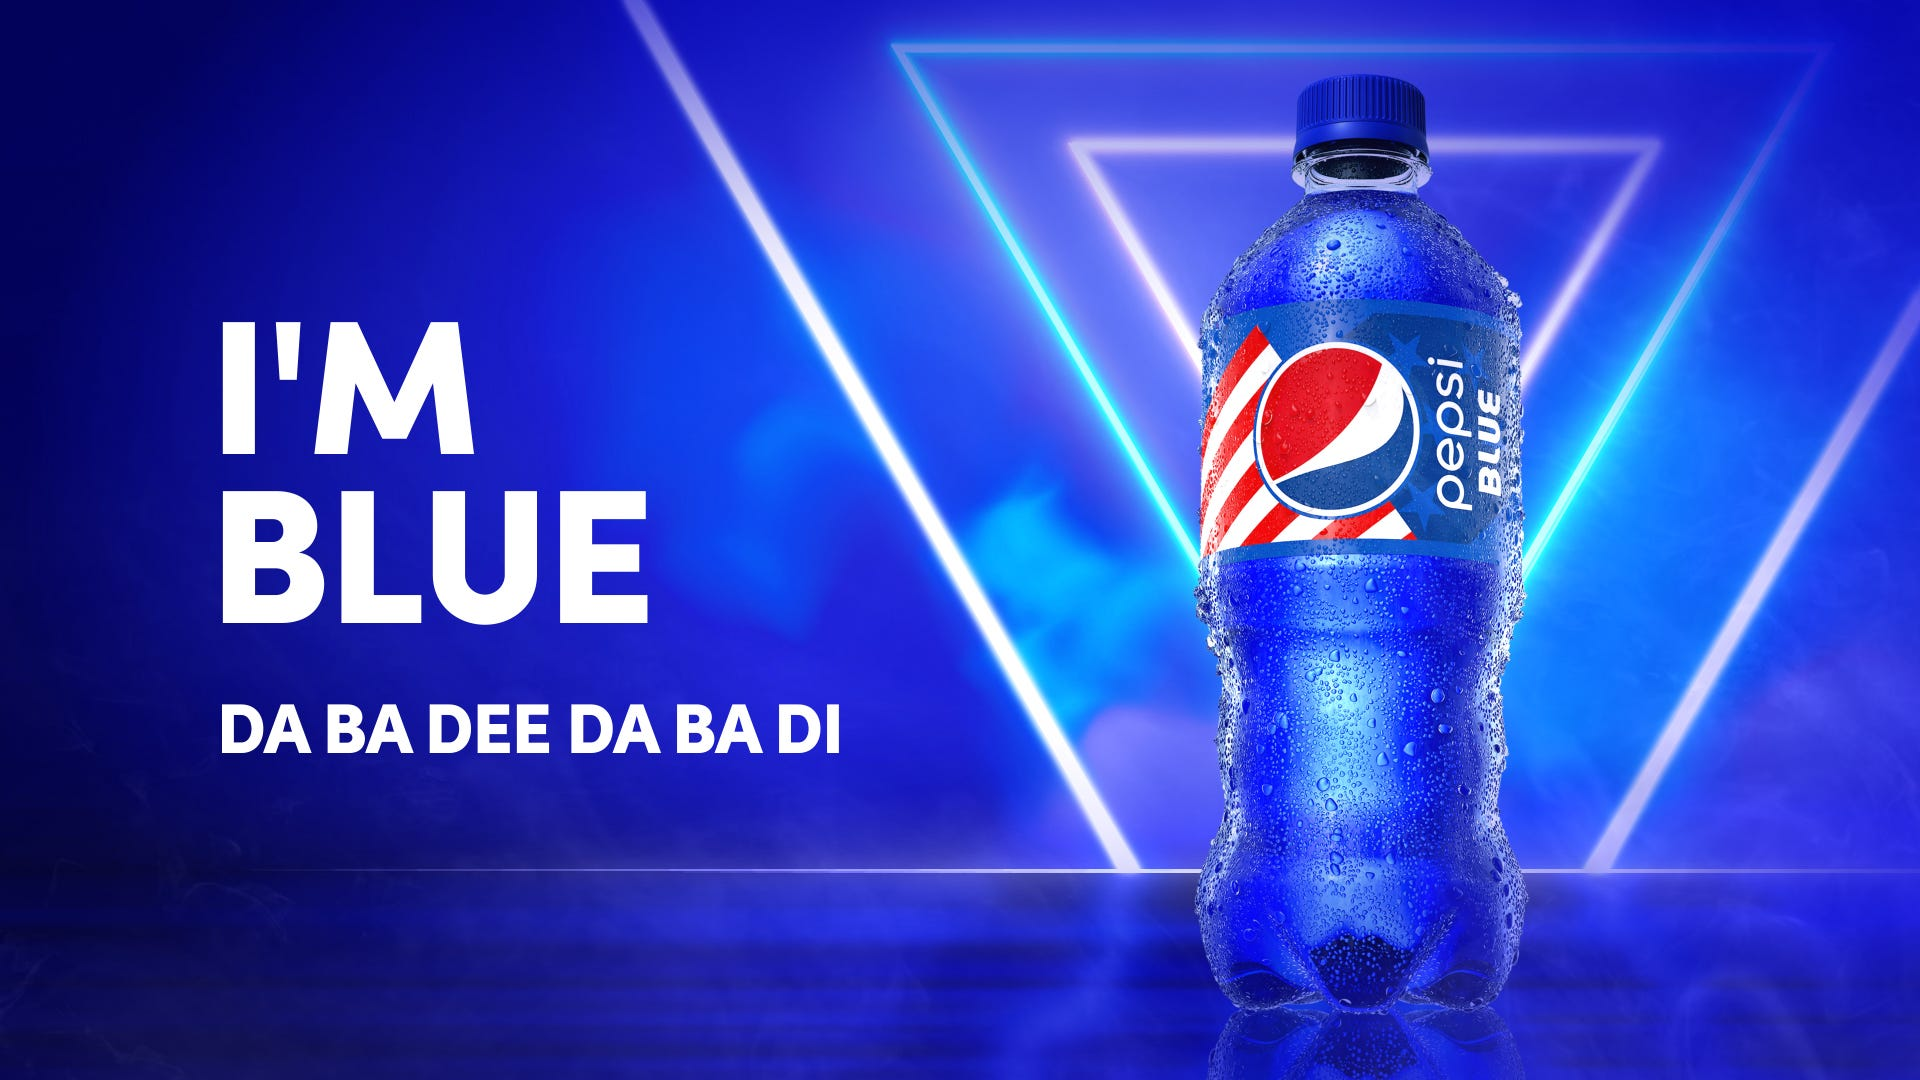 Pepsi Blue is coming back in May for the first time since 2004